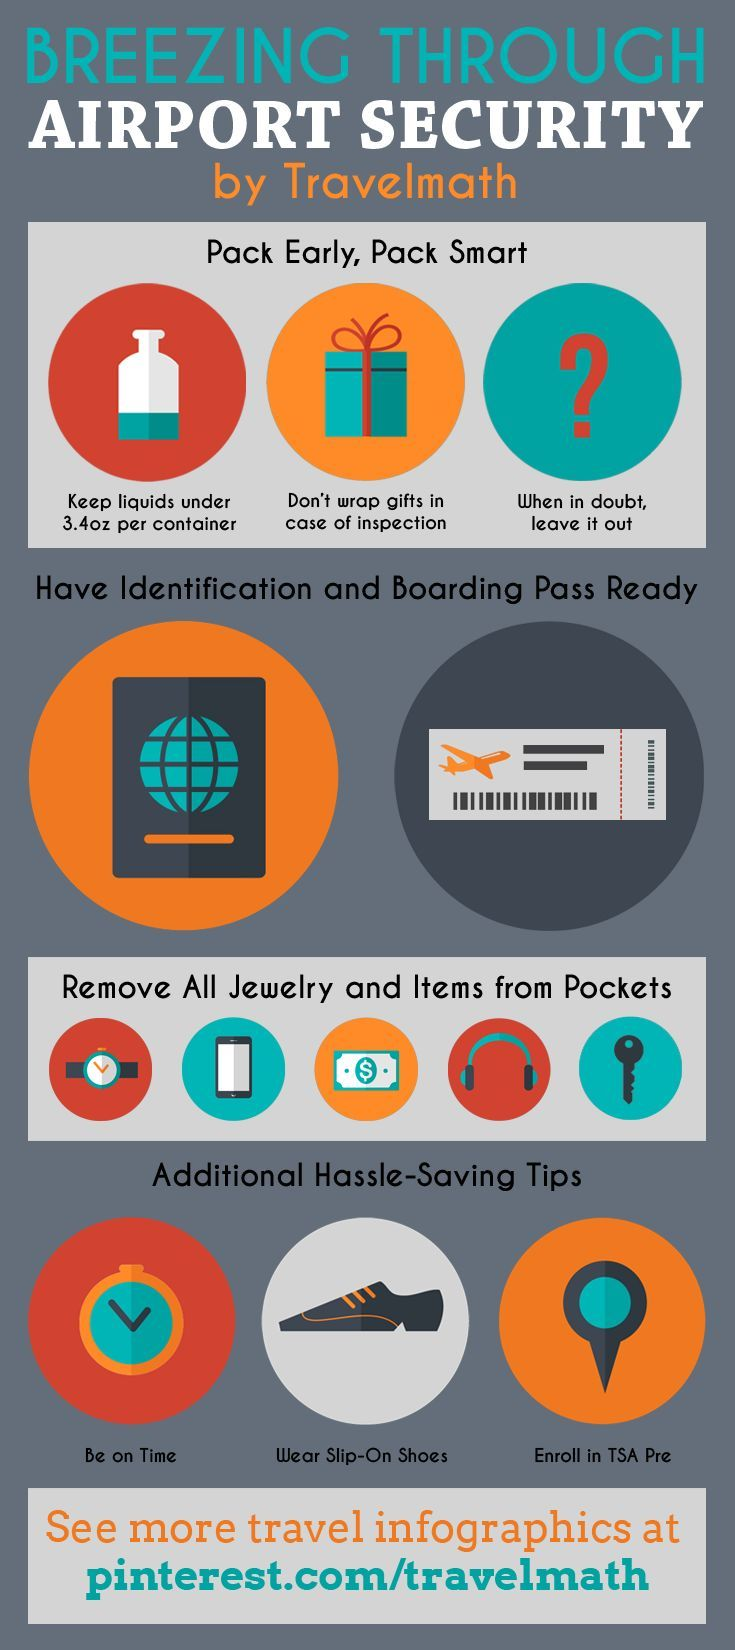 Breezing Through Airport Security [INFOGRAPHIC] #travel